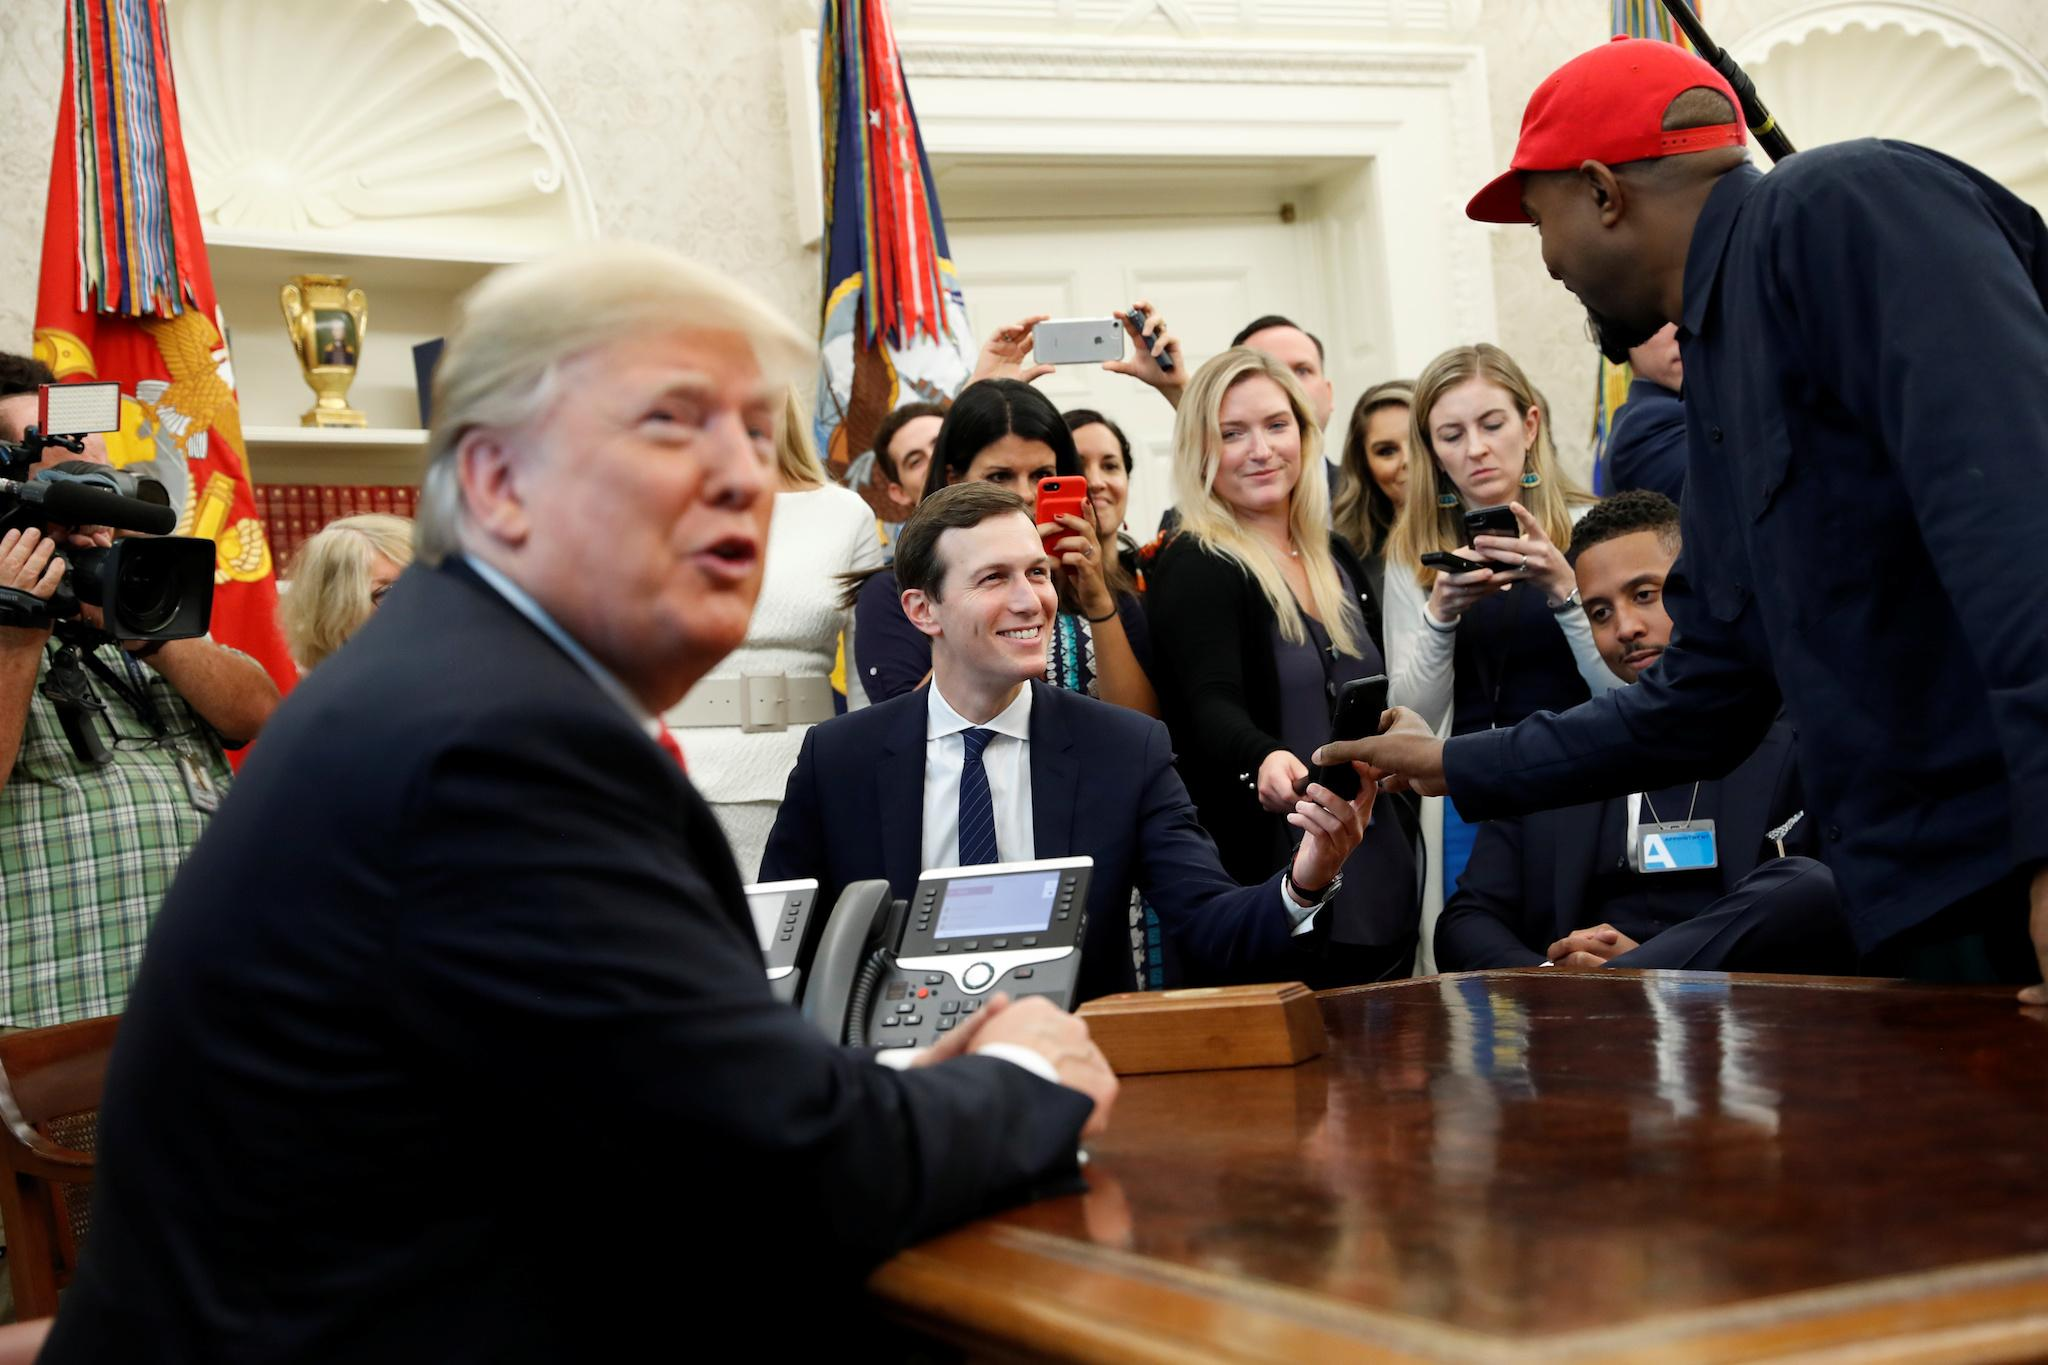 Kanye West shows world his iPhone passcode during strange meeting with Donald Trump in White House